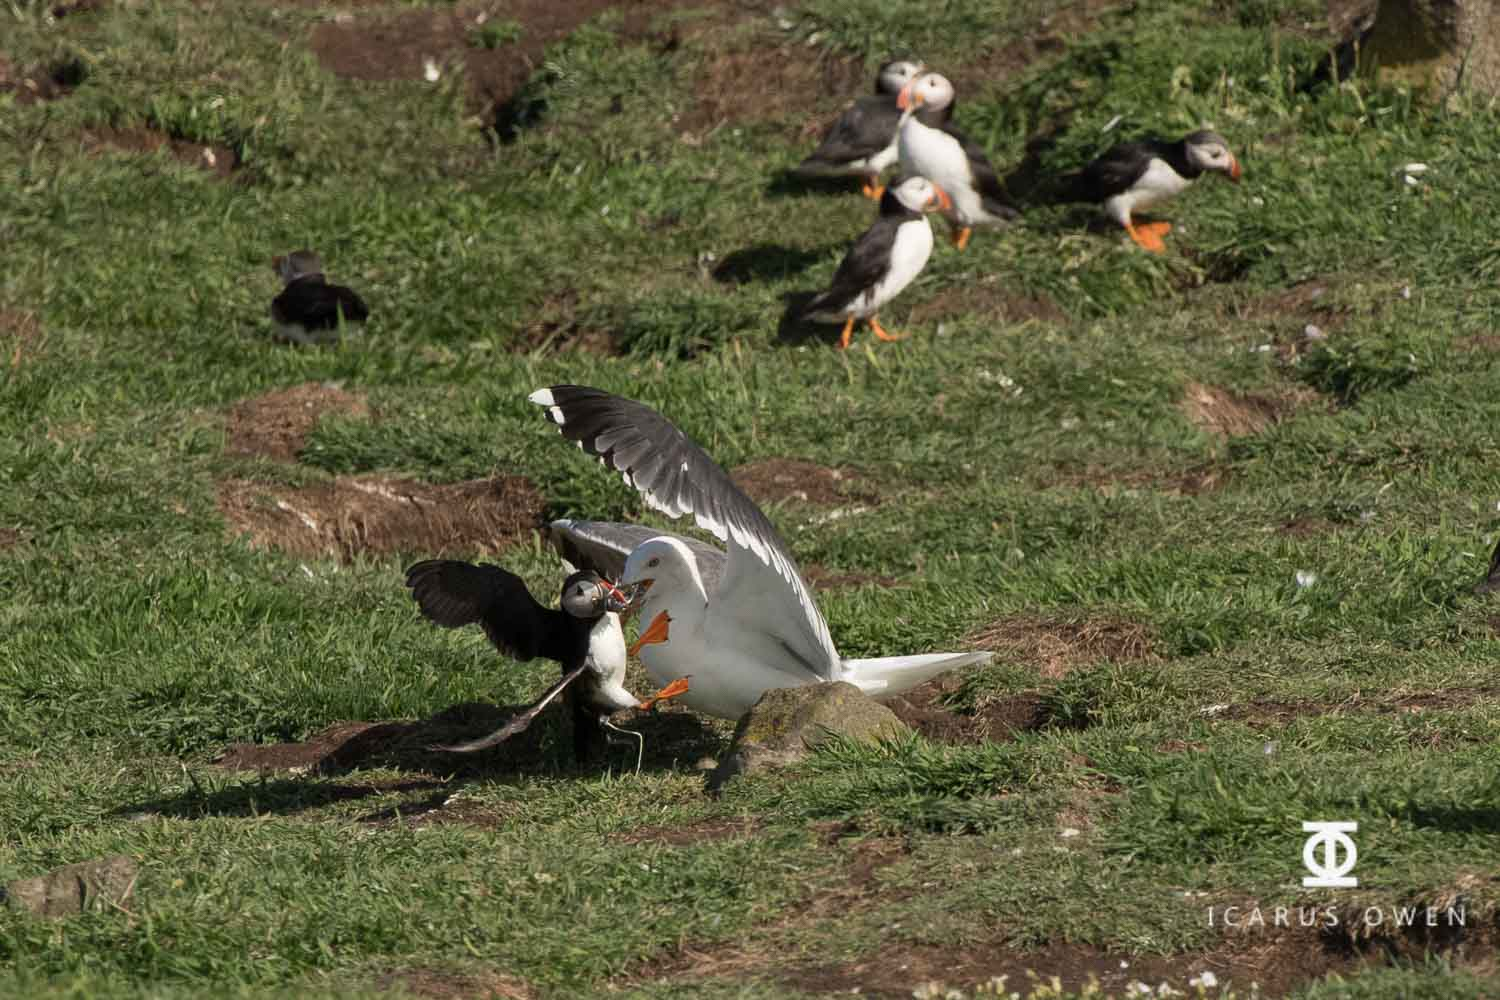 Kleptoparasitism-Puffin-Black-Backed-Gull-Icarus-Owen